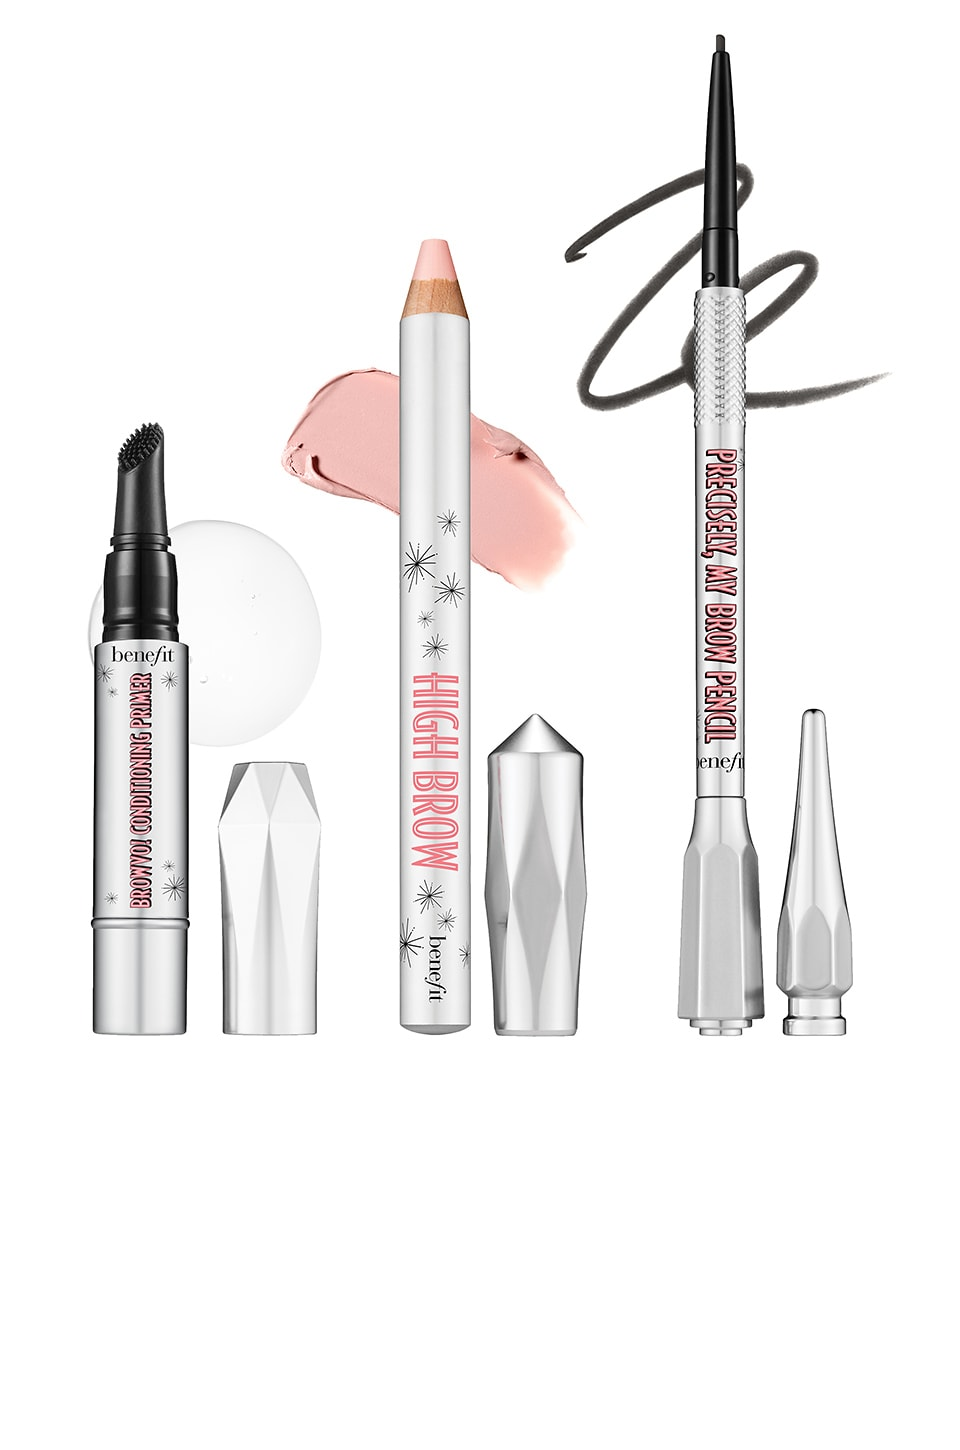 Benefit Cosmetics Defined & Refined Brows Kit in 06 Deep